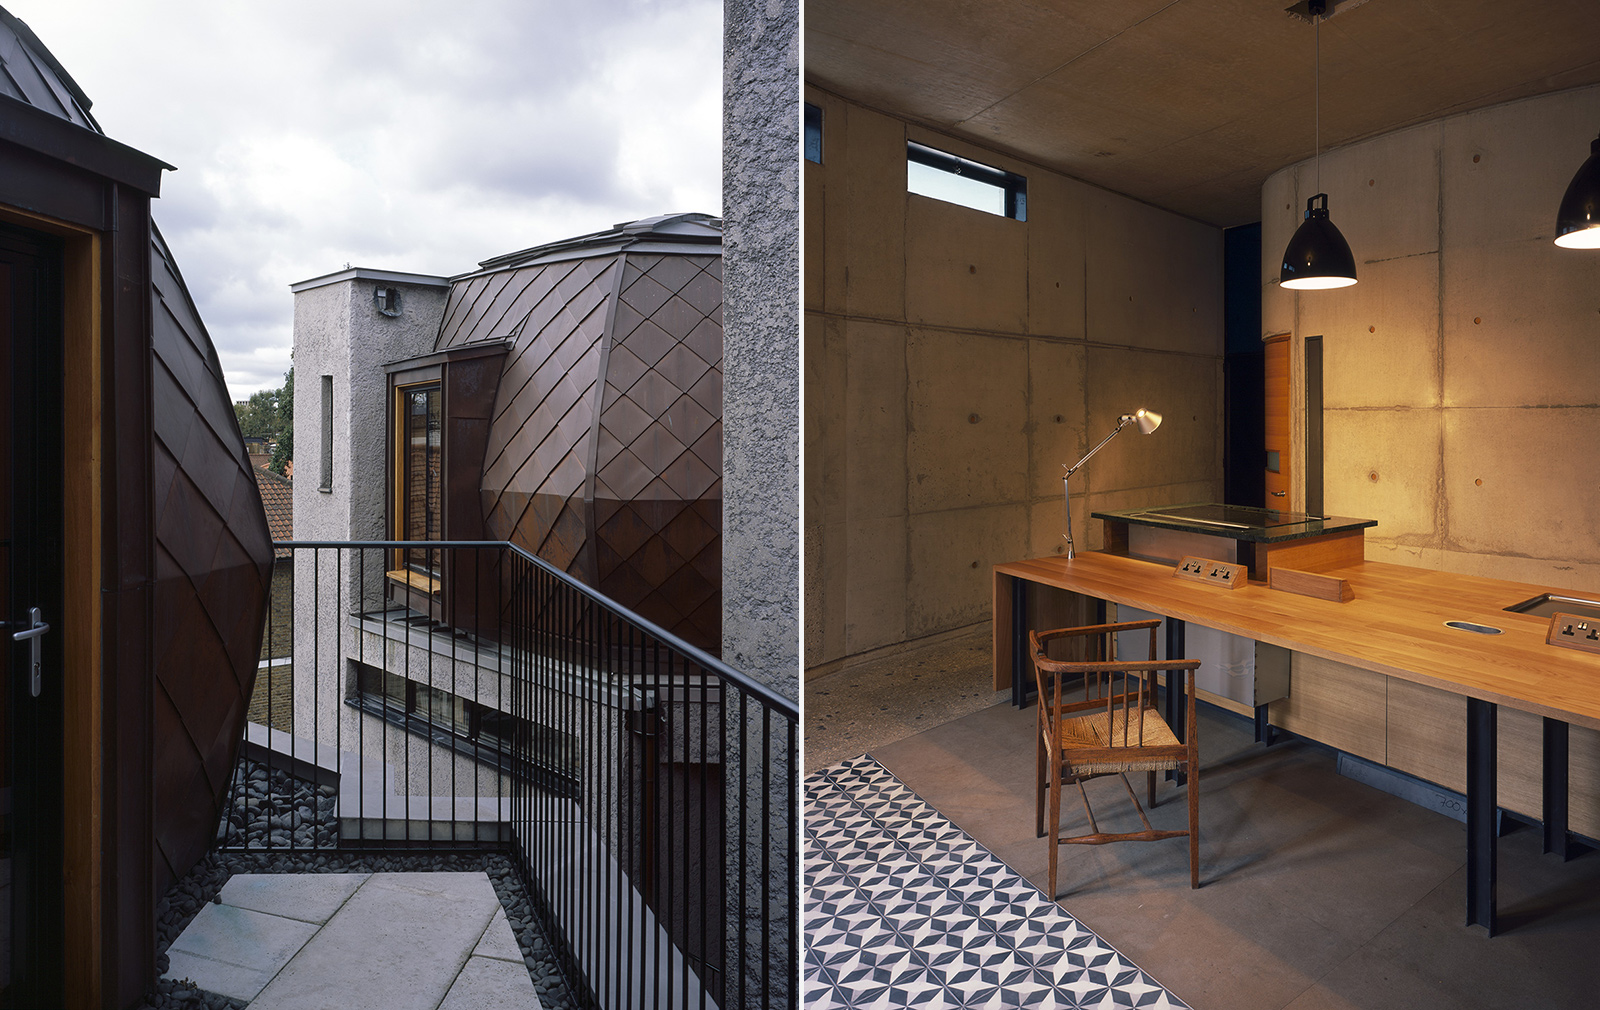 Walmer Road London by Architect Peter Salter - the most unusual London homes for sale right now